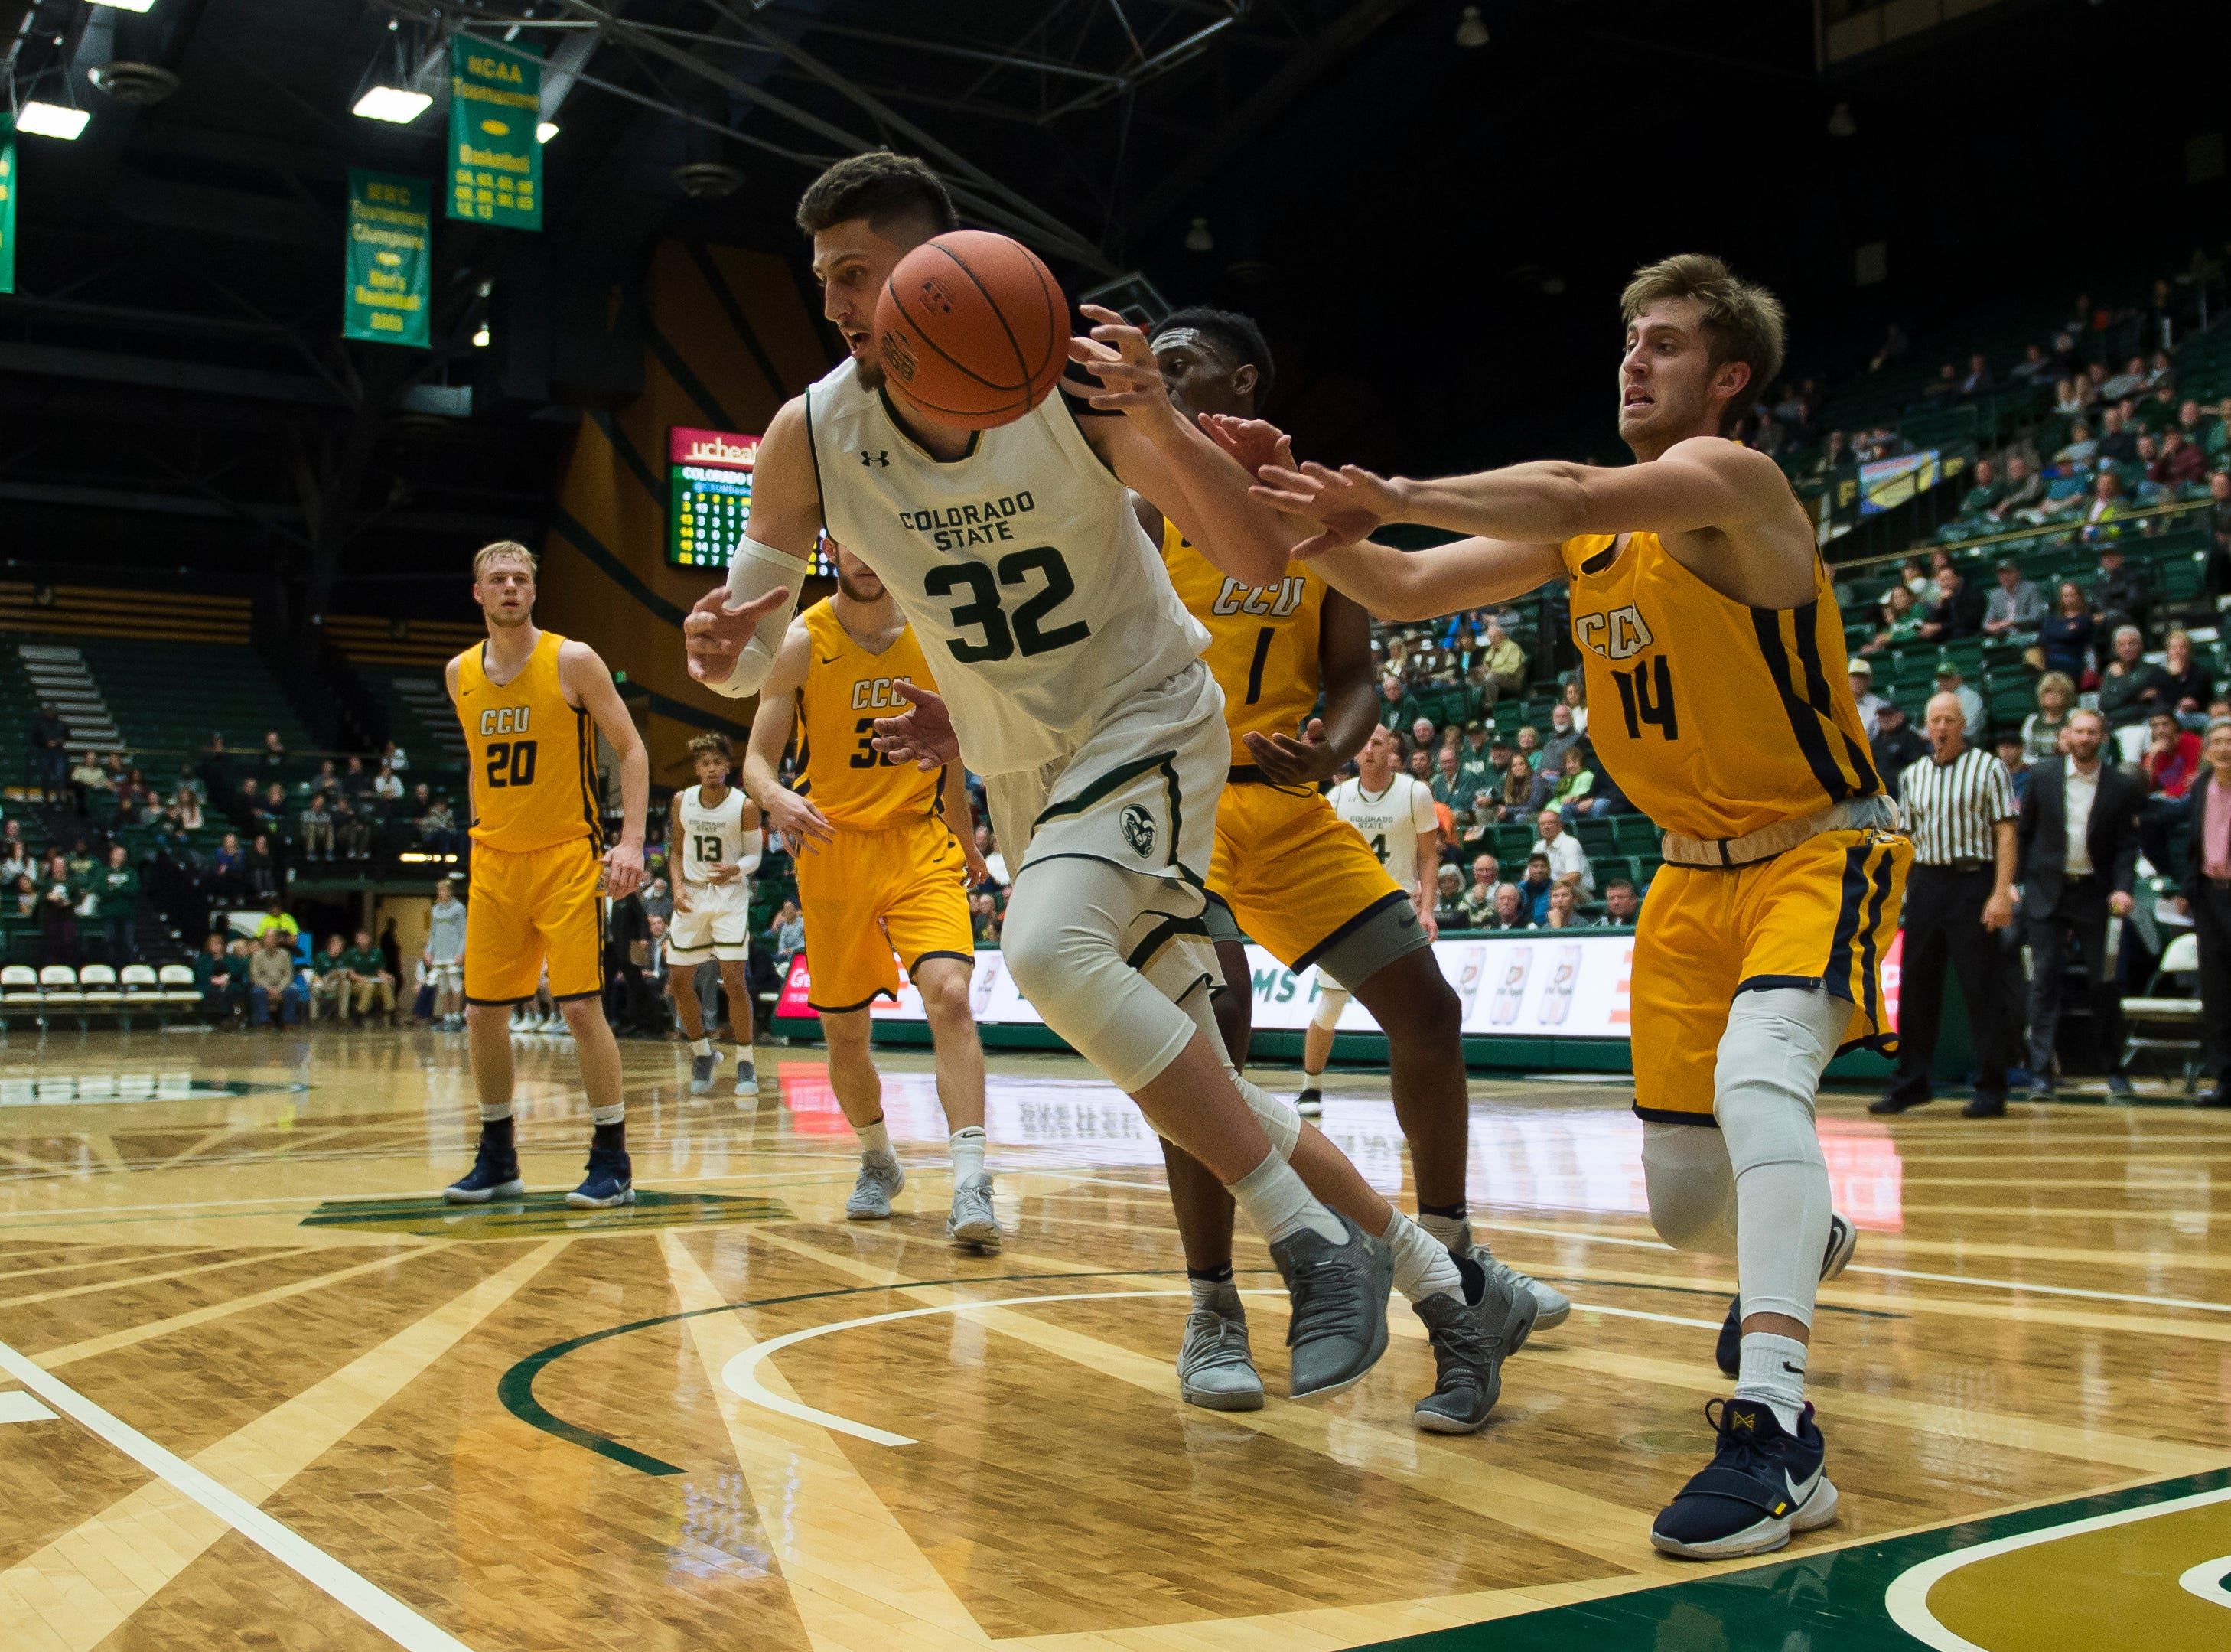 Colorado State University junior center Nico Carvacho (32) positions himself during a game against Colorado Christian University on Wednesday, Nov. 7, 2018, at Moby Arena in Fort Collins, Colo.